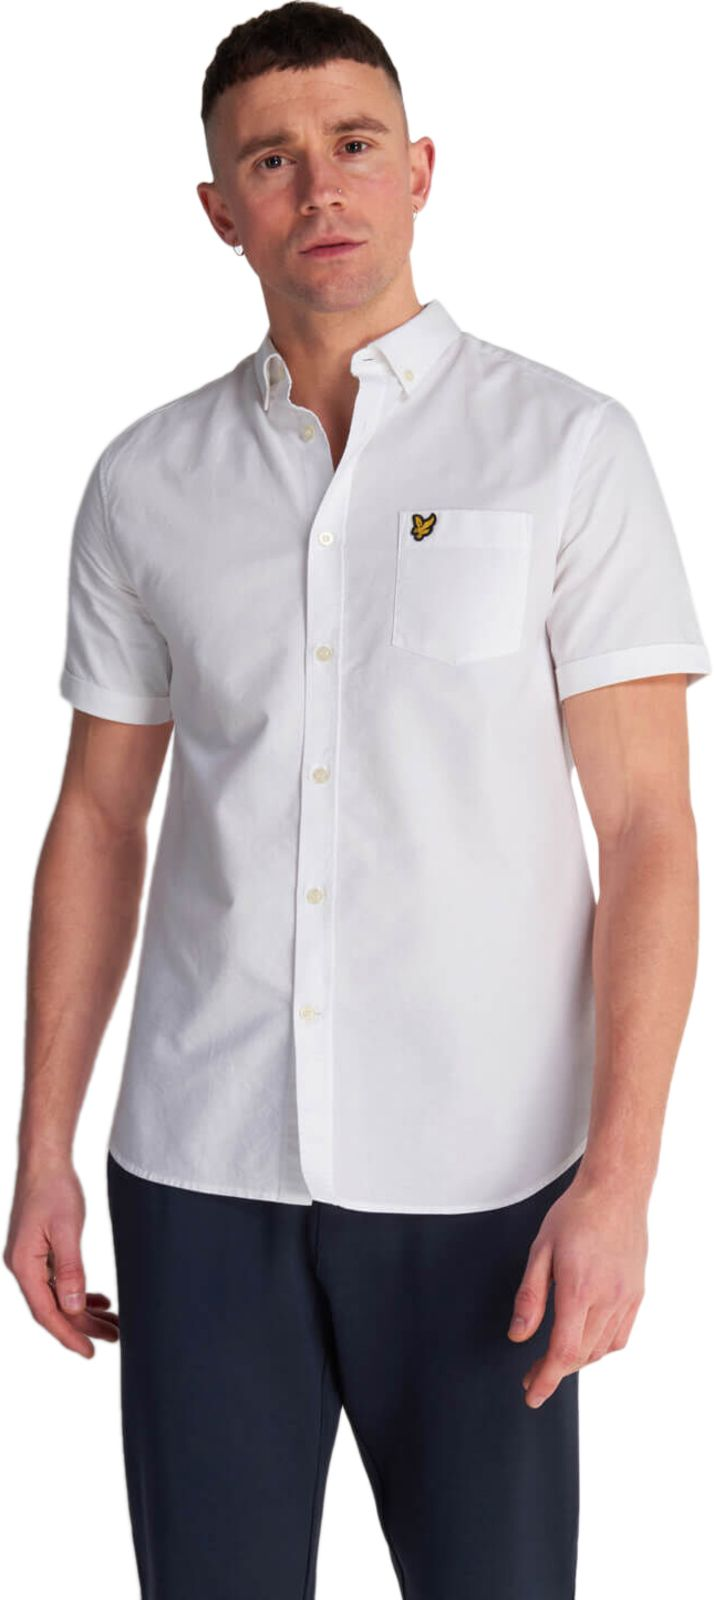 Lyle & Scott Short Sleeve Oxford Shirt White